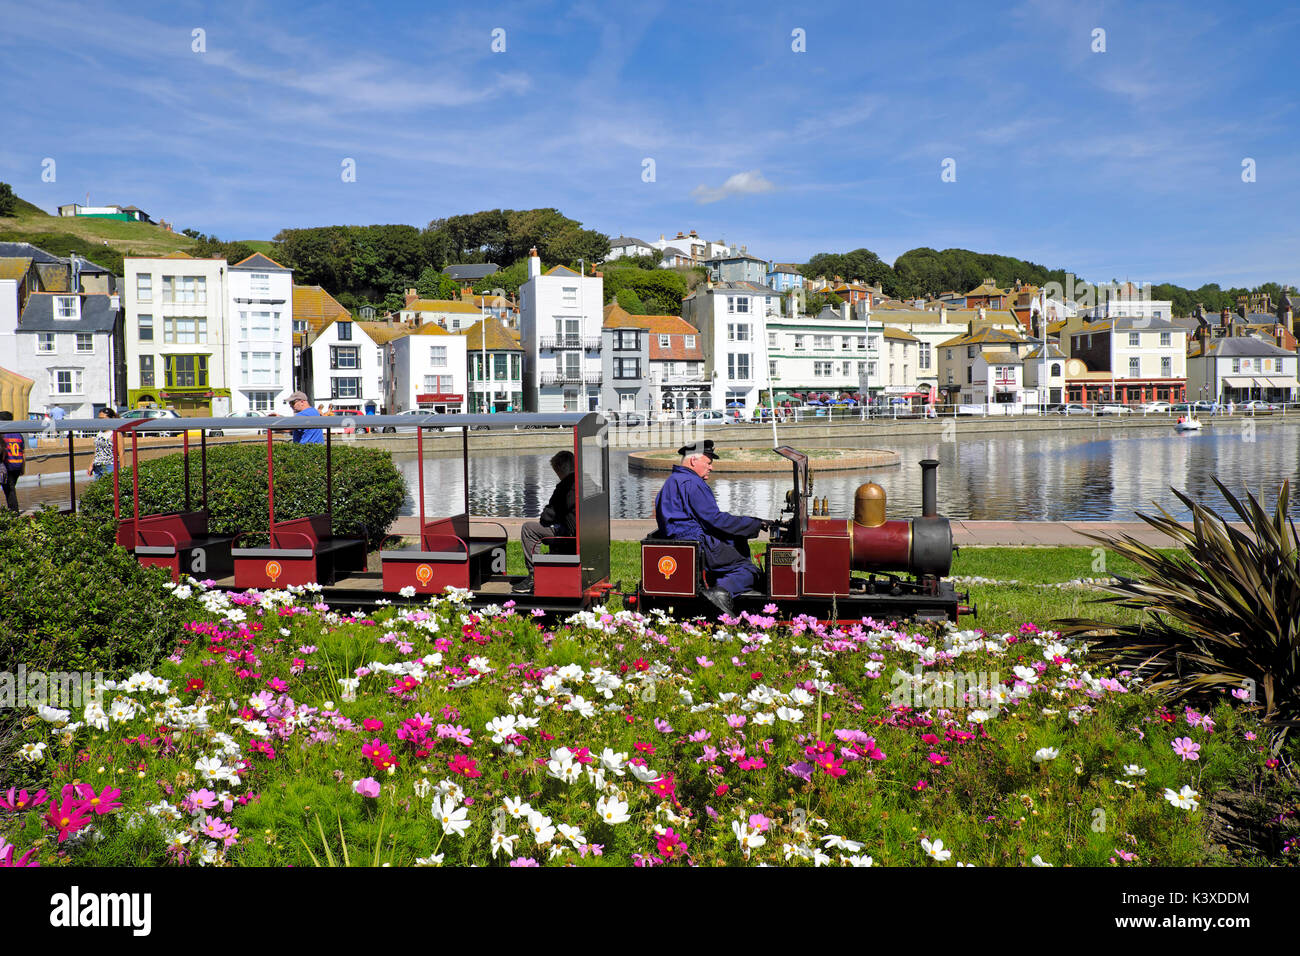 Hastings, UK. Miniature train on the seafront railway, on the promenade by the boating lake. Hastings Old Town seafront, East Sussex, England, UK, GB - Stock Image